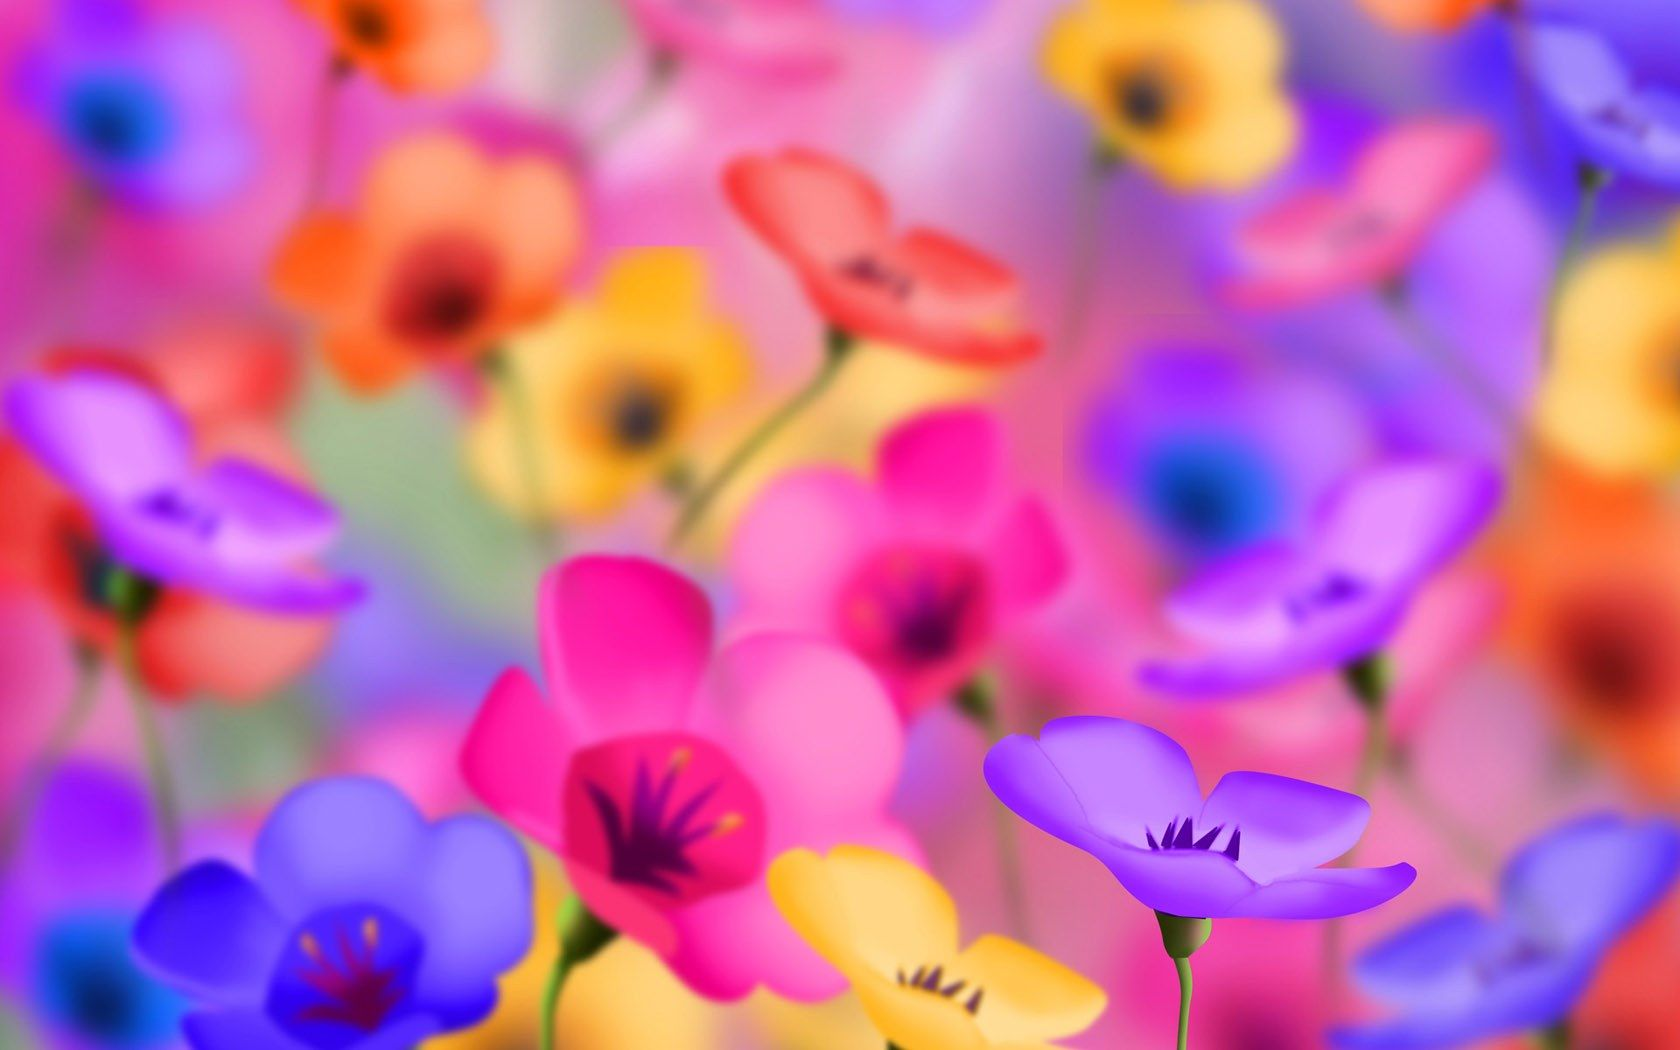 Colorful Flowers Jpg 1680 1050 Pixels Amazing Flowers Colorful Flowers Flower Pictures